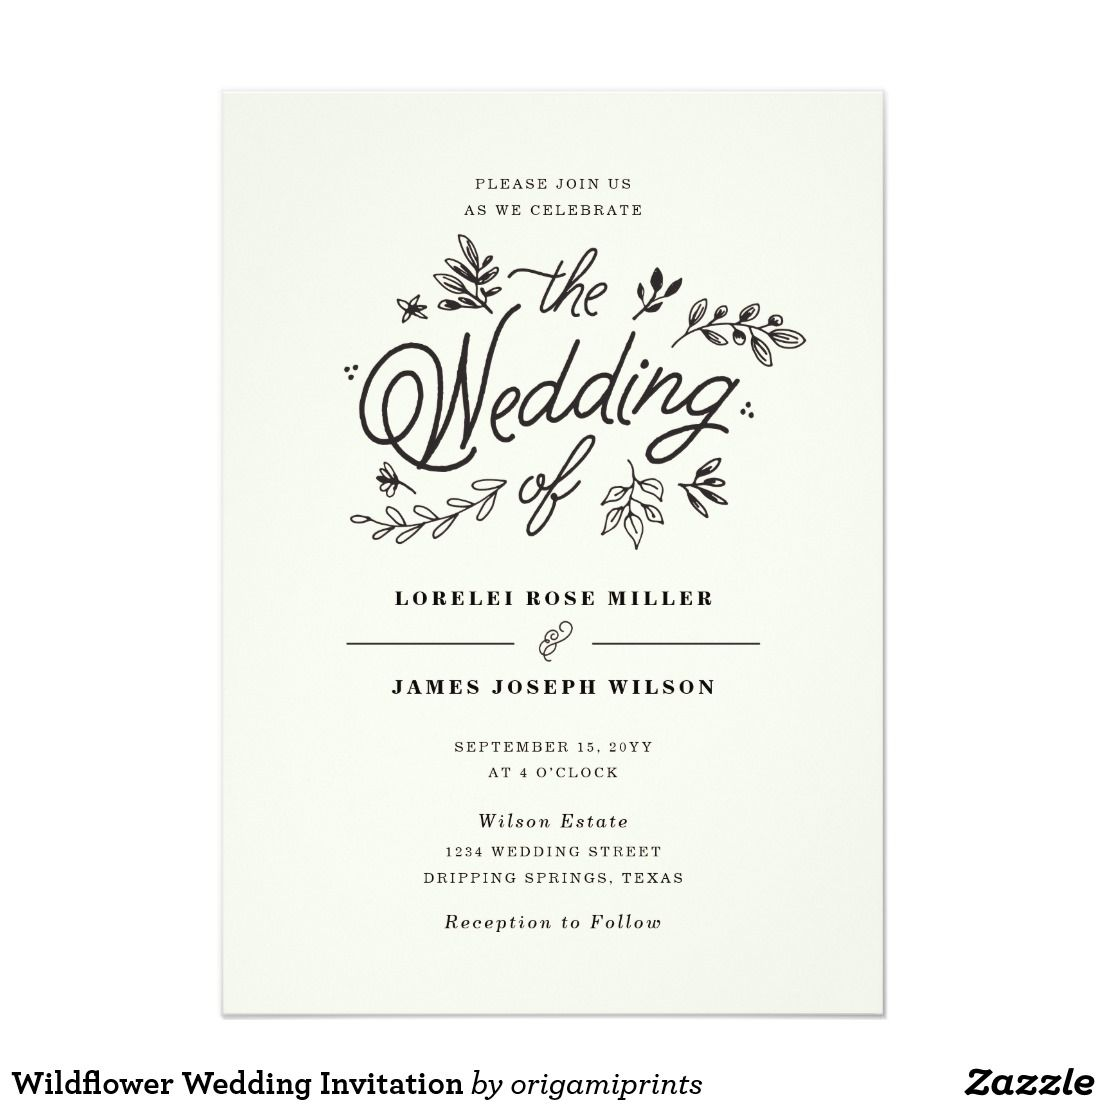 Wildflower Wedding Invitation | Wedding and Engagement Collection ...